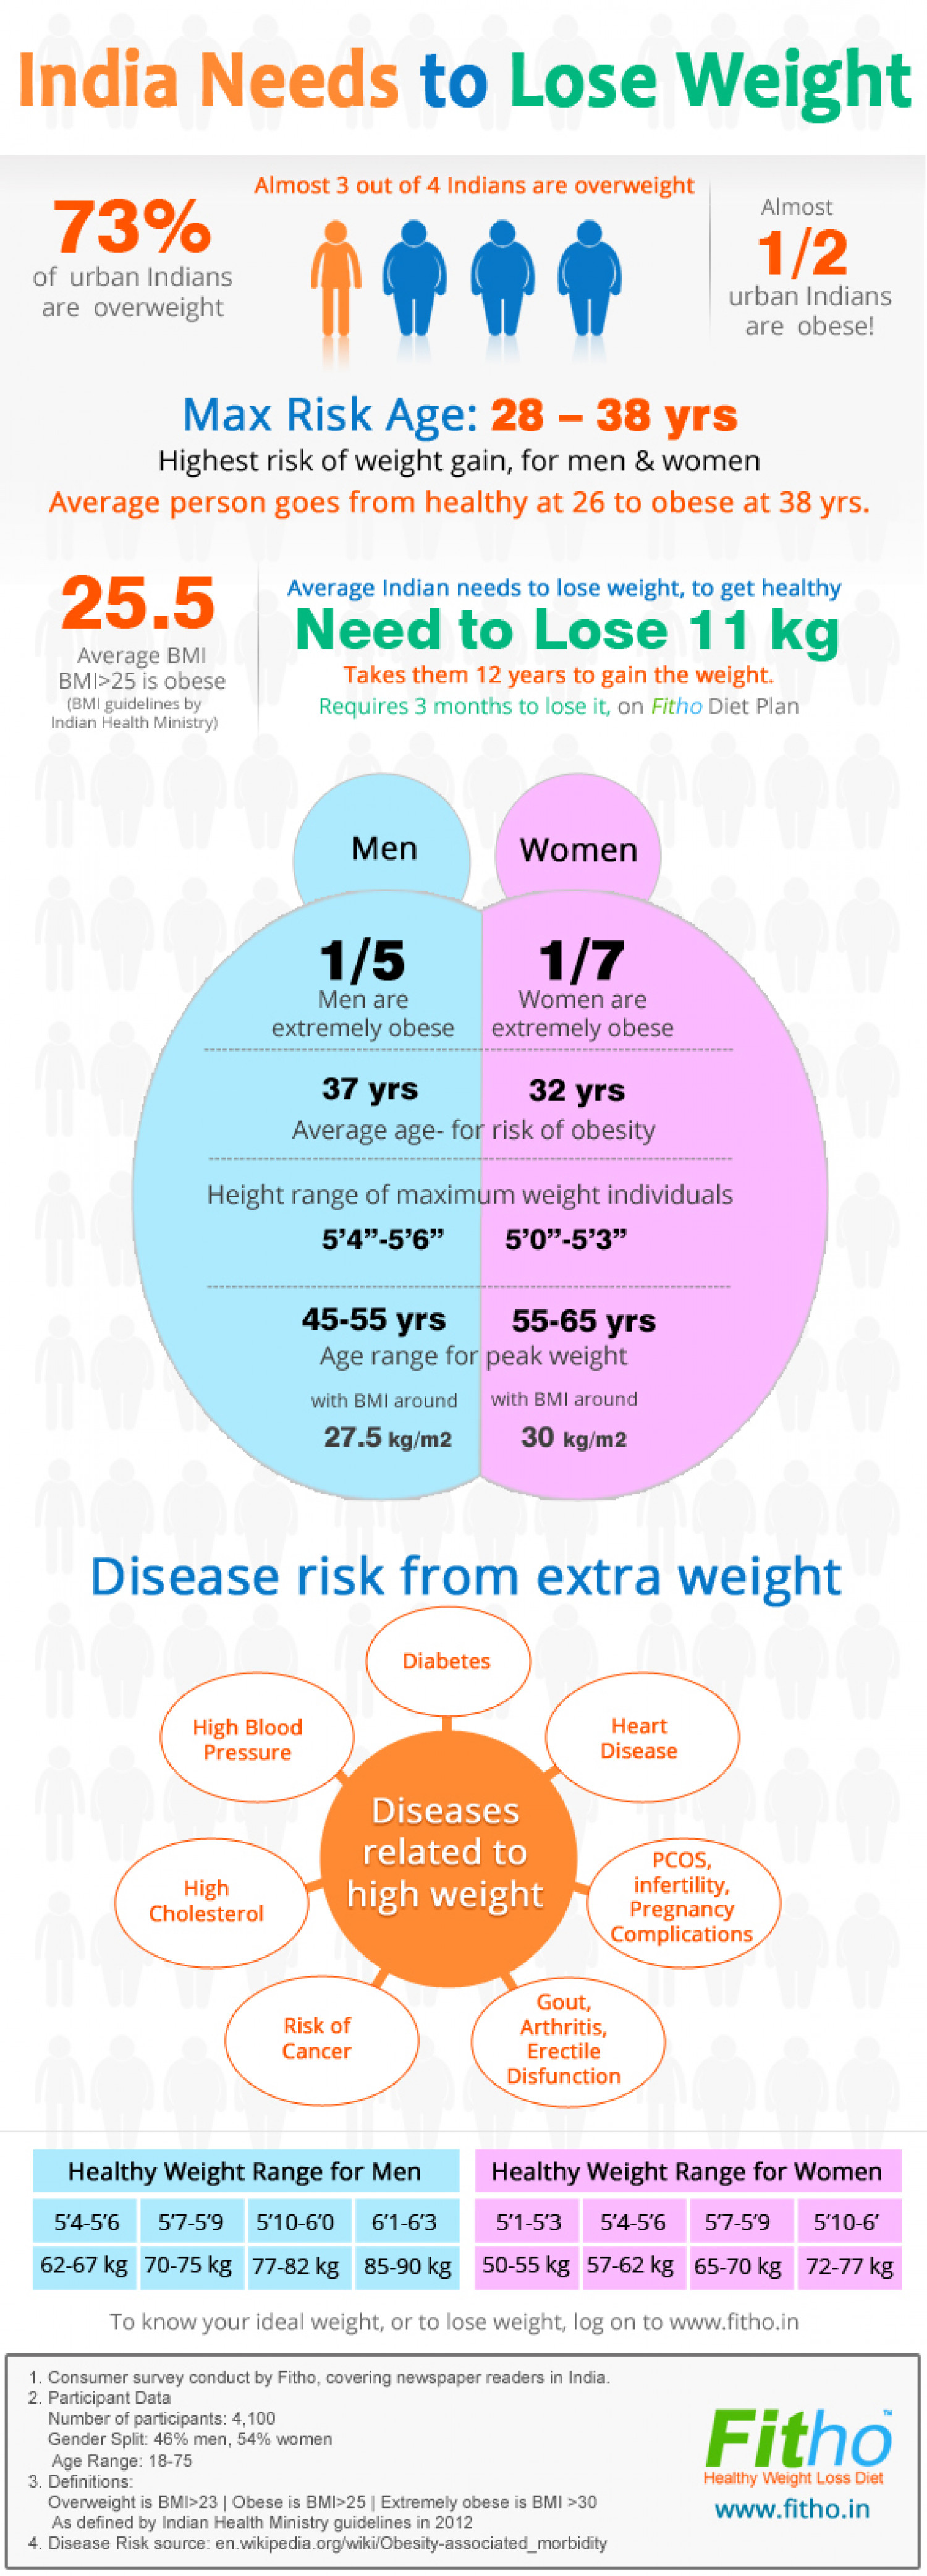 1 out of 2 Indian are Obese - India Needs to Lose Weight Infographic